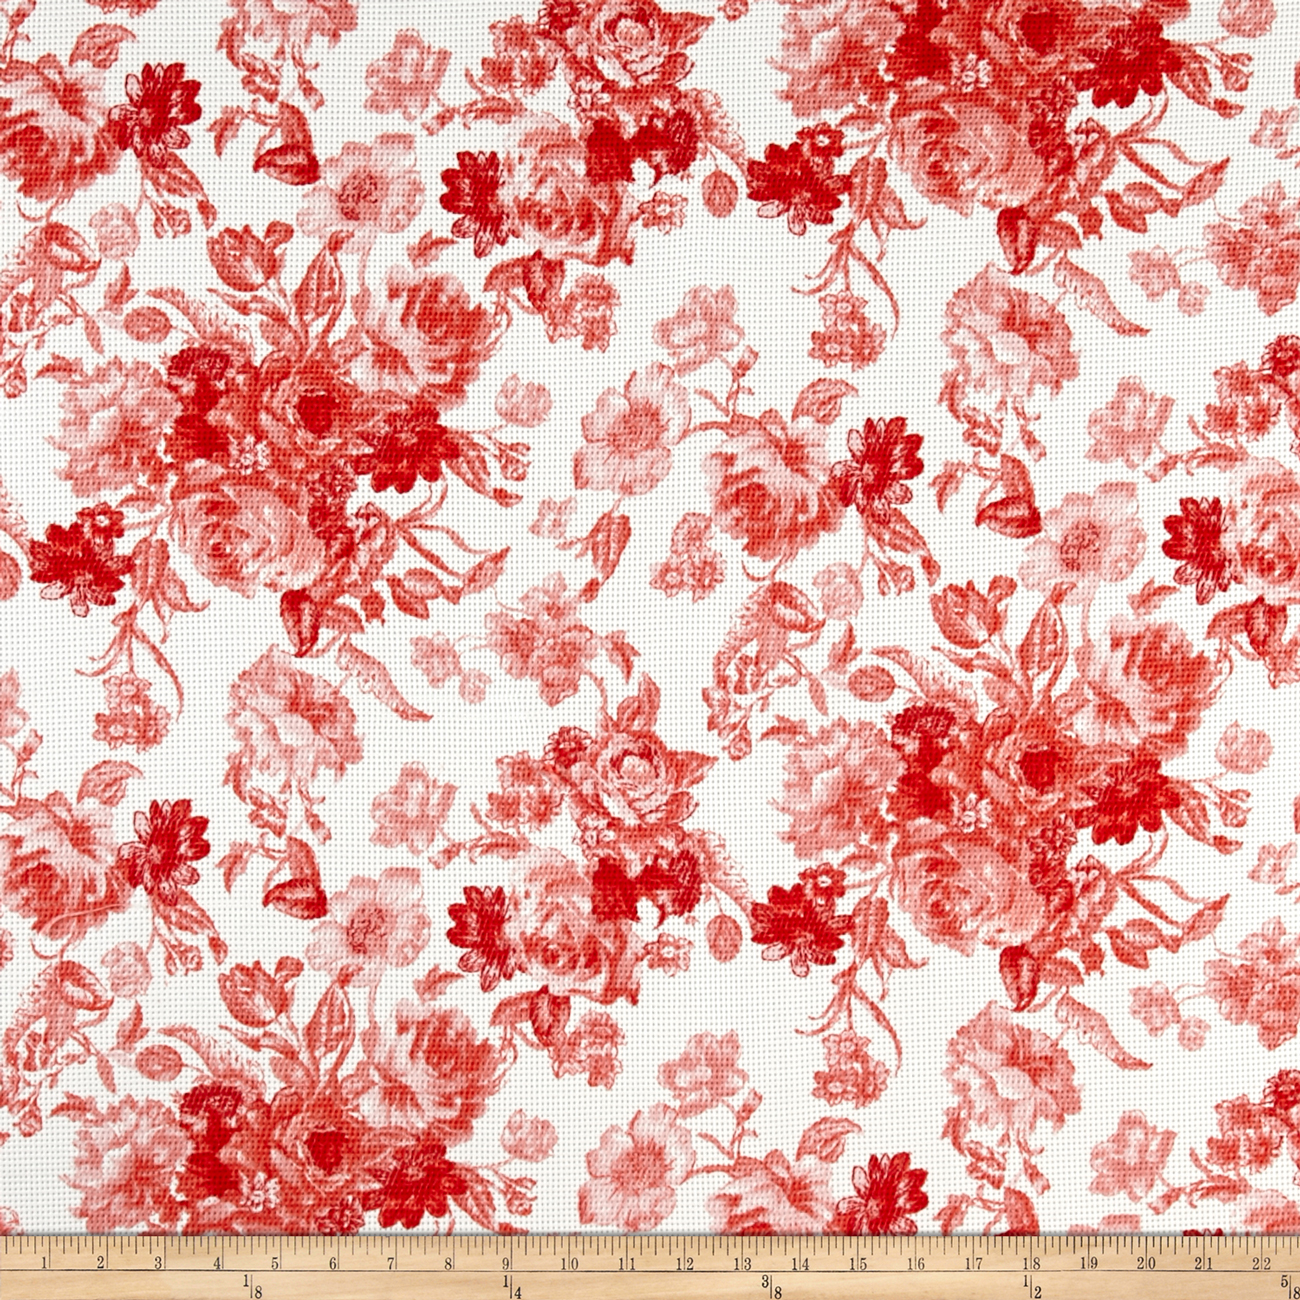 Romantic Floral Pique Knit Print Ivory/Coral Fabric by Neiman in USA